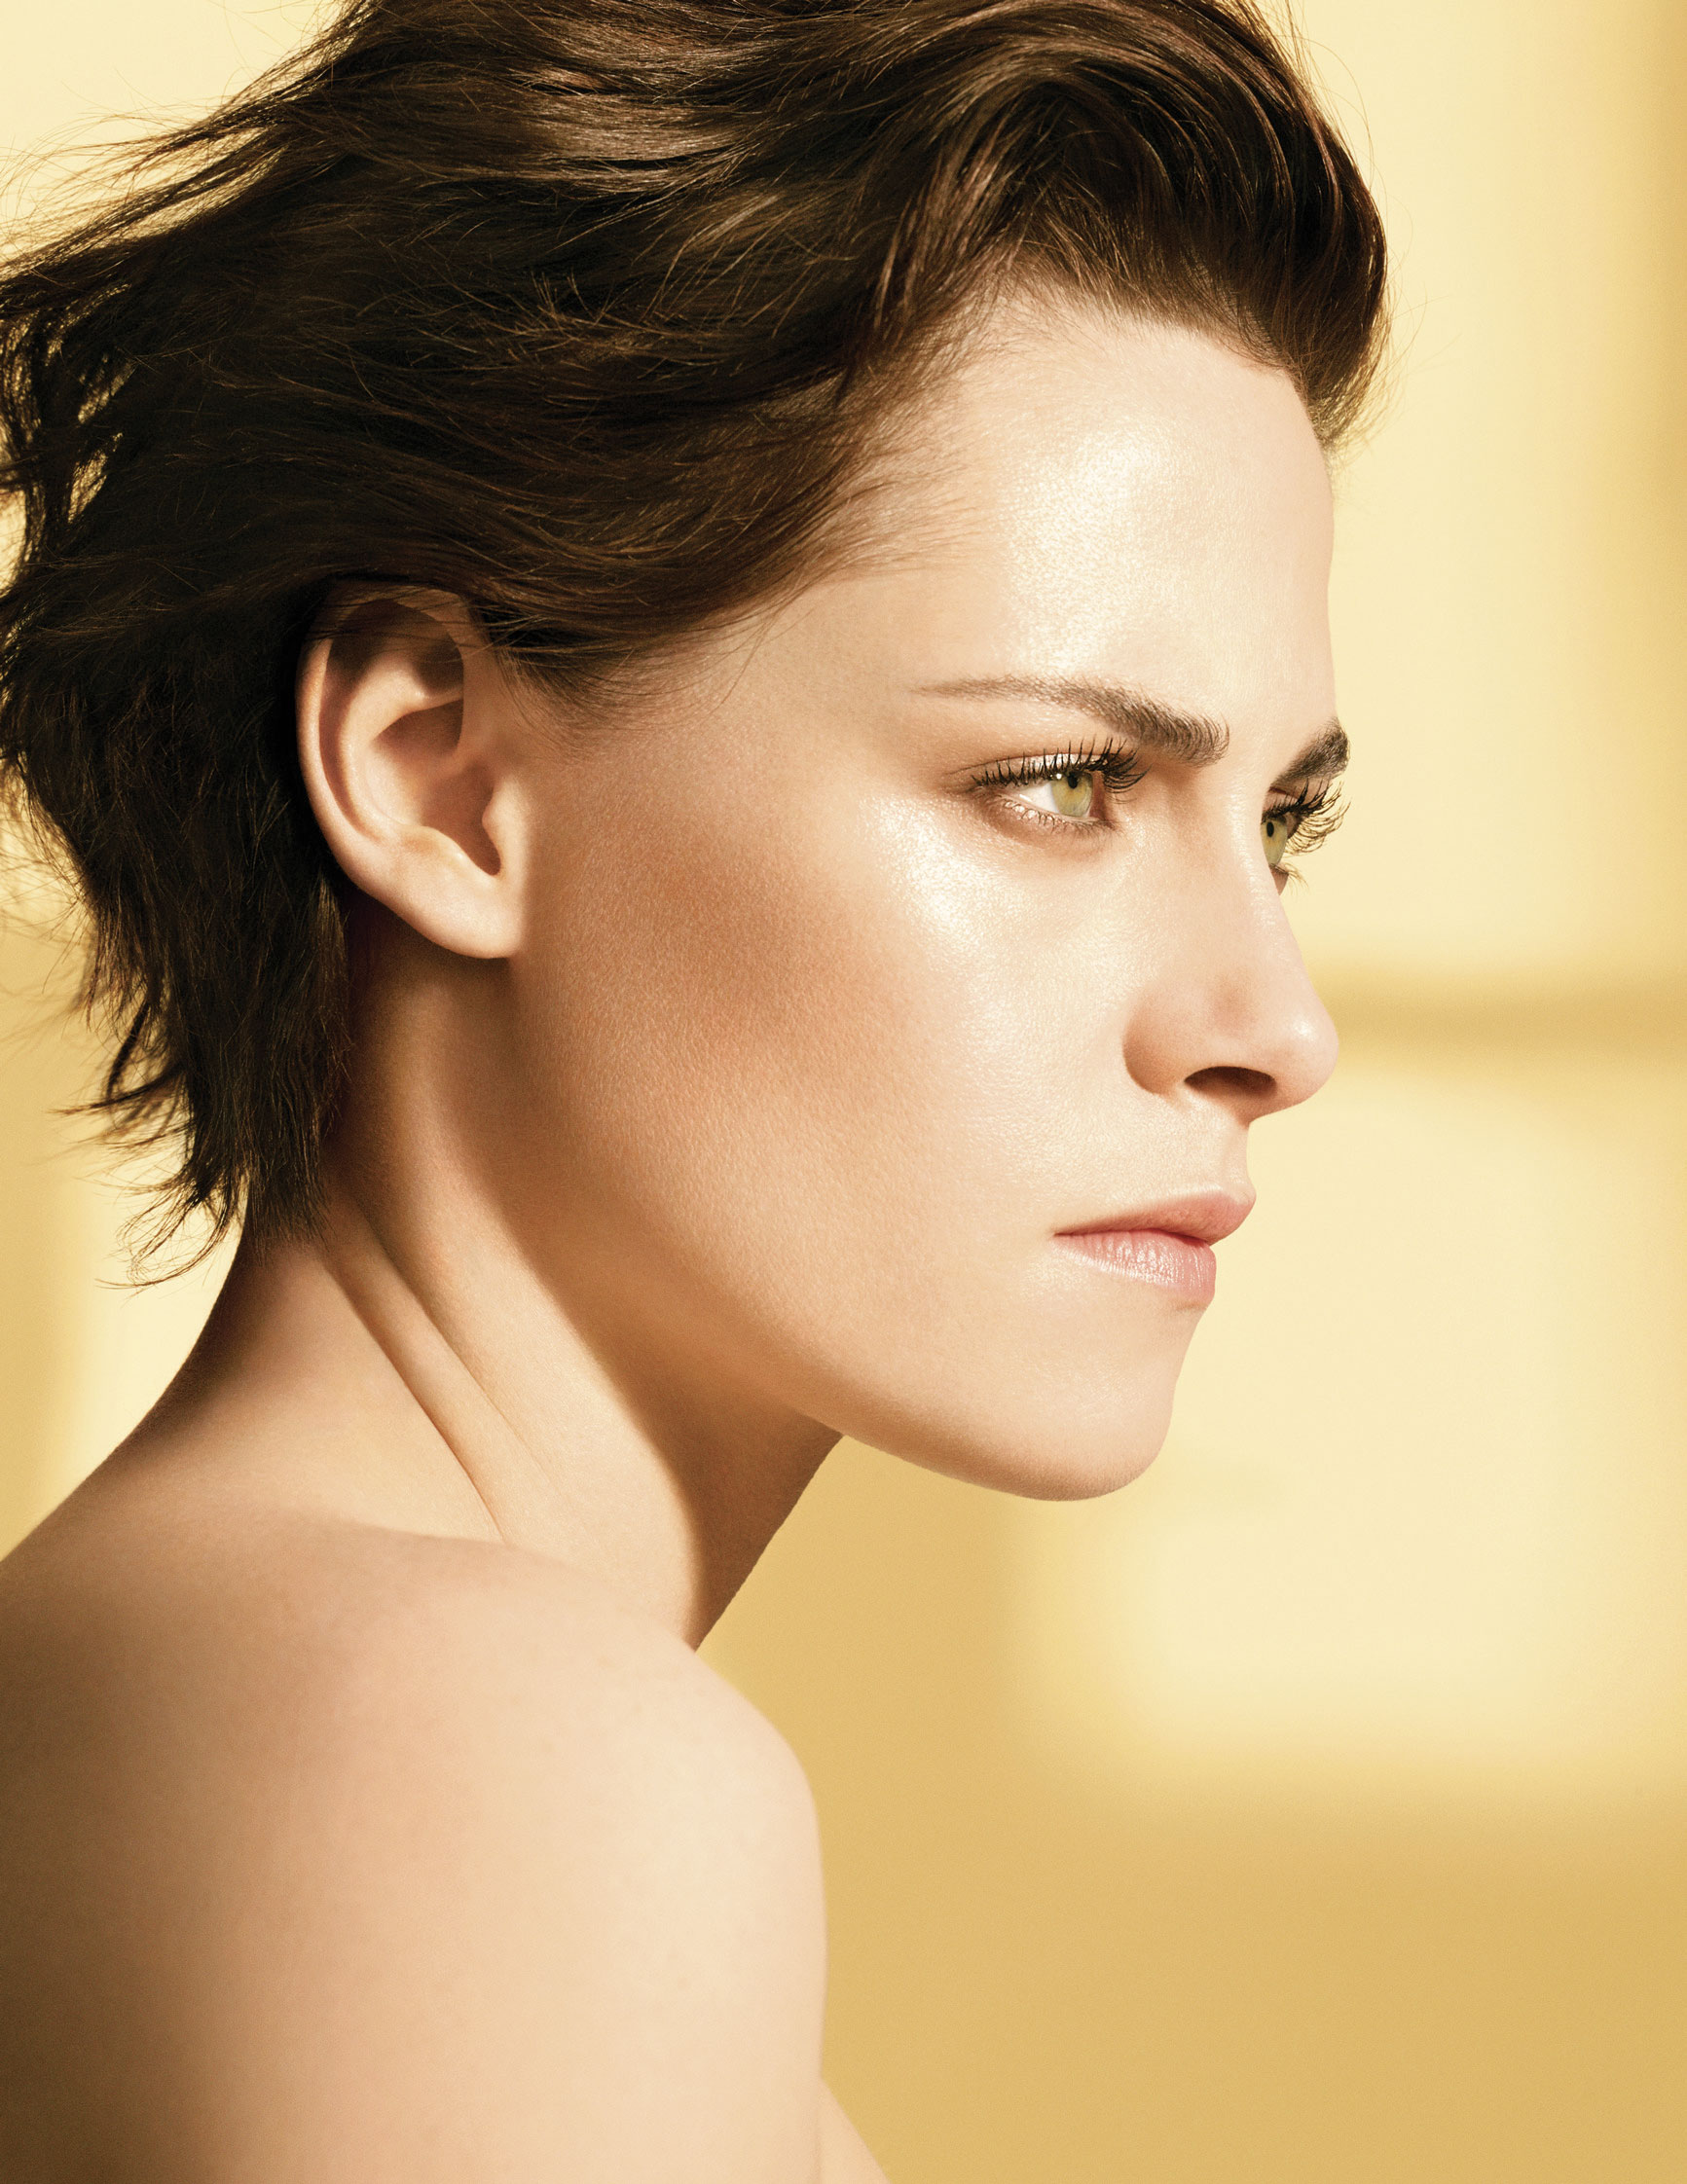 Gabrielle Chanel Fragrance Ad Campaign The New Visual Starring Kristen Stewartfashionela